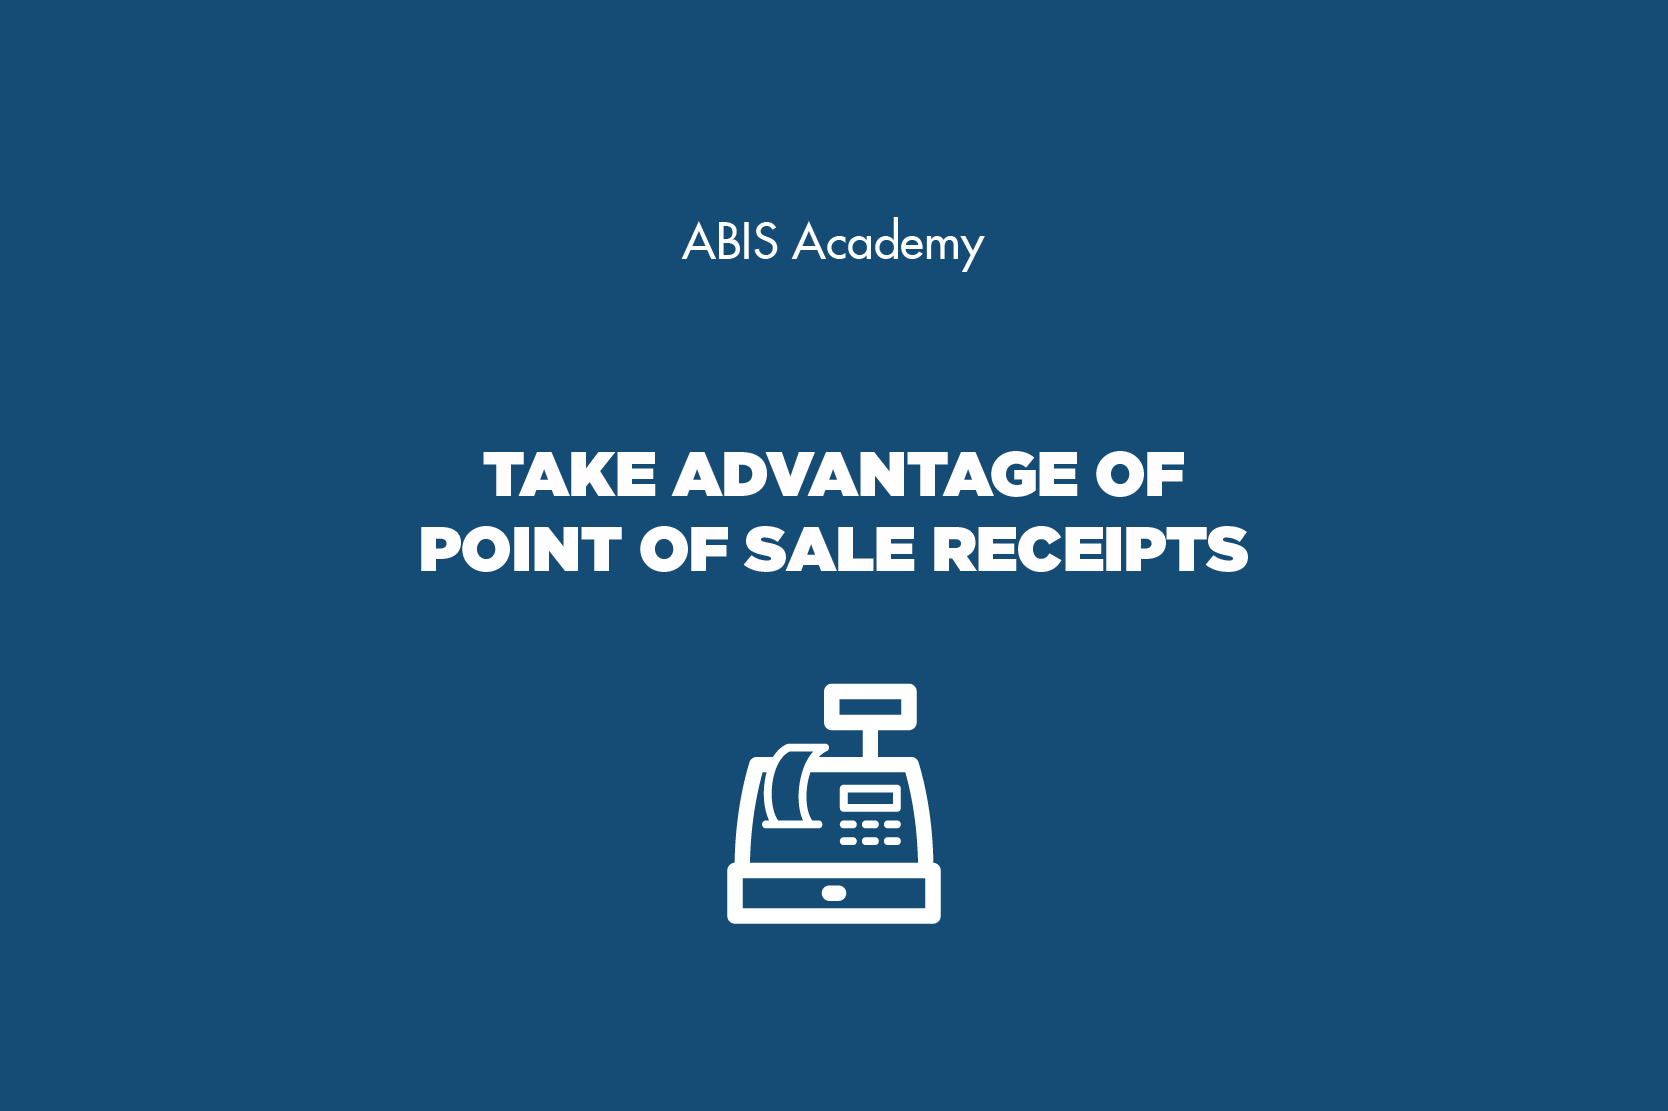 take advantage of point of sale receipts